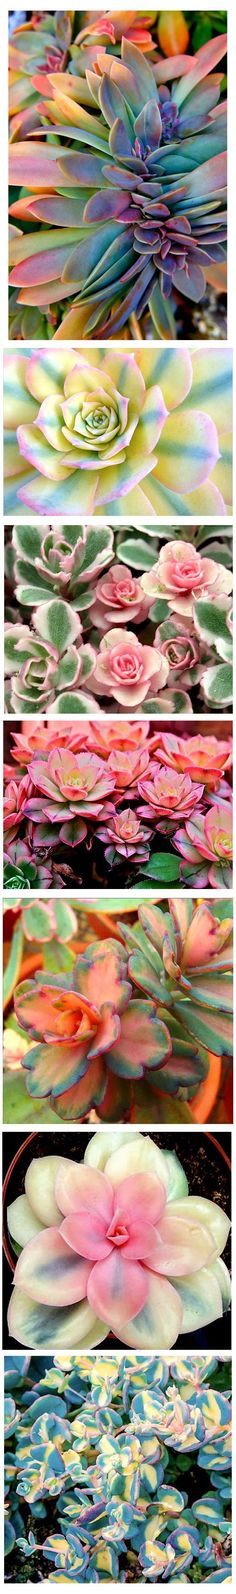 Variegated Succulents . Are these real??? would love to have some of these